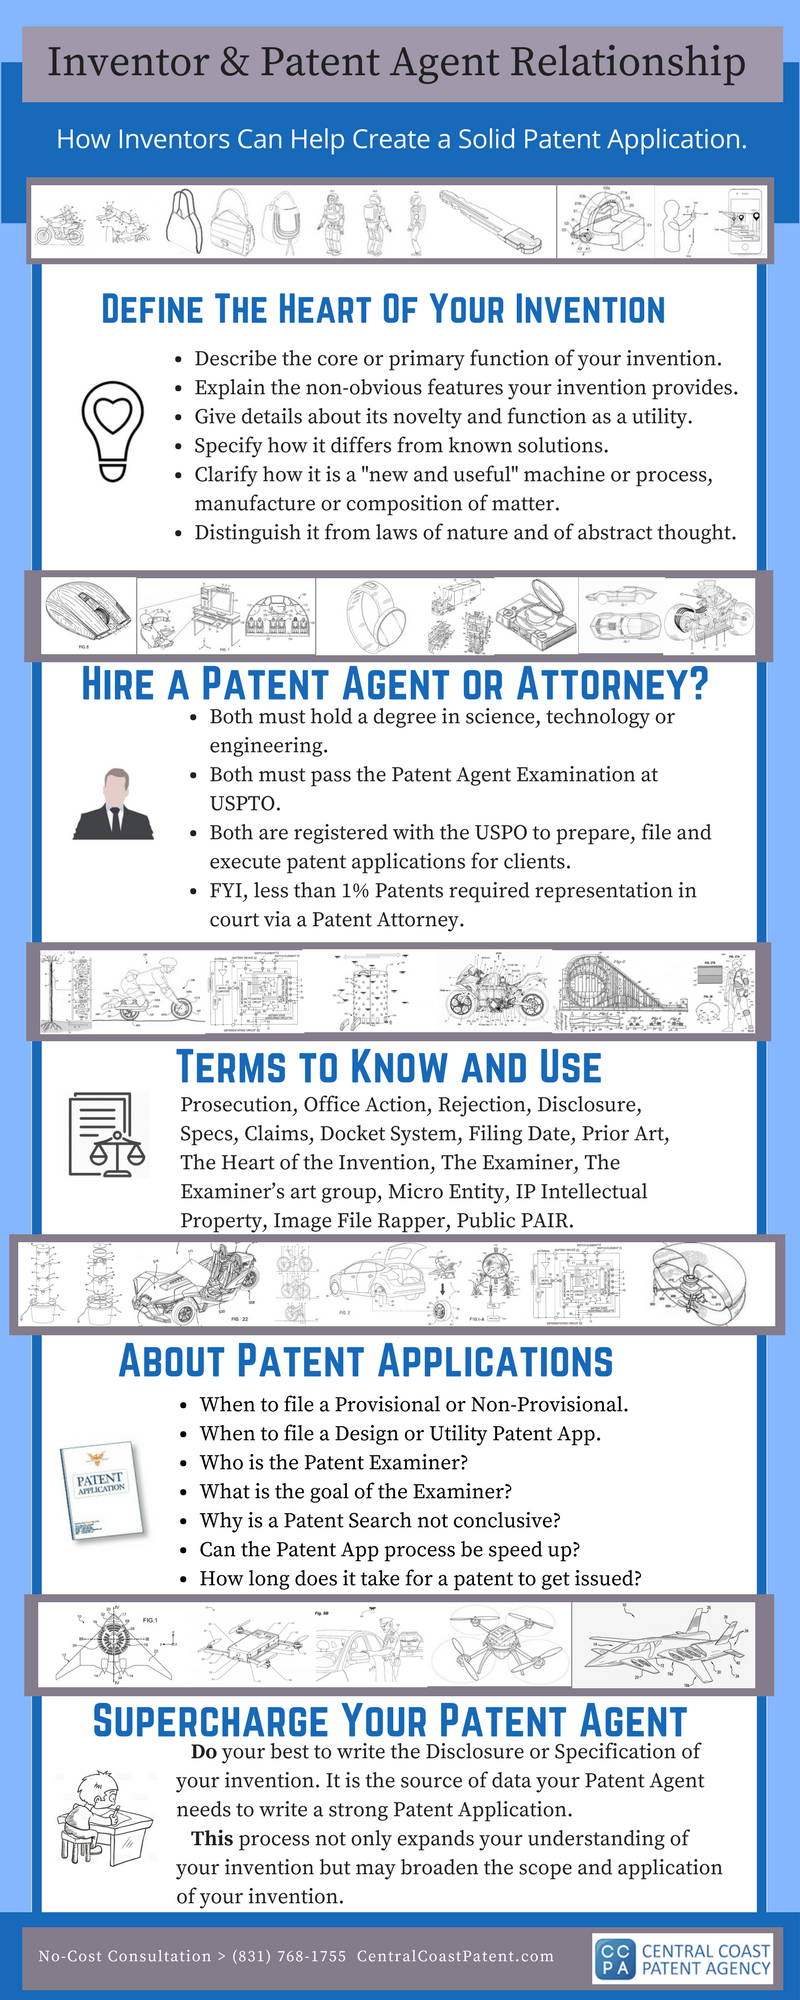 intellectual property firms how to protect intellectual property